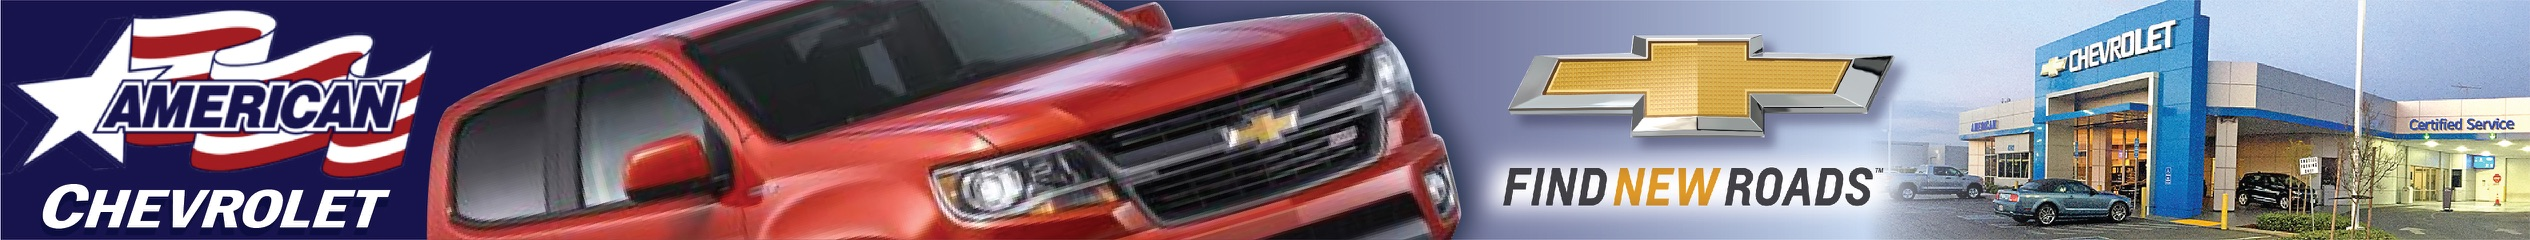 American Chevrolet - 2018 - 1 - Banner - News - Top